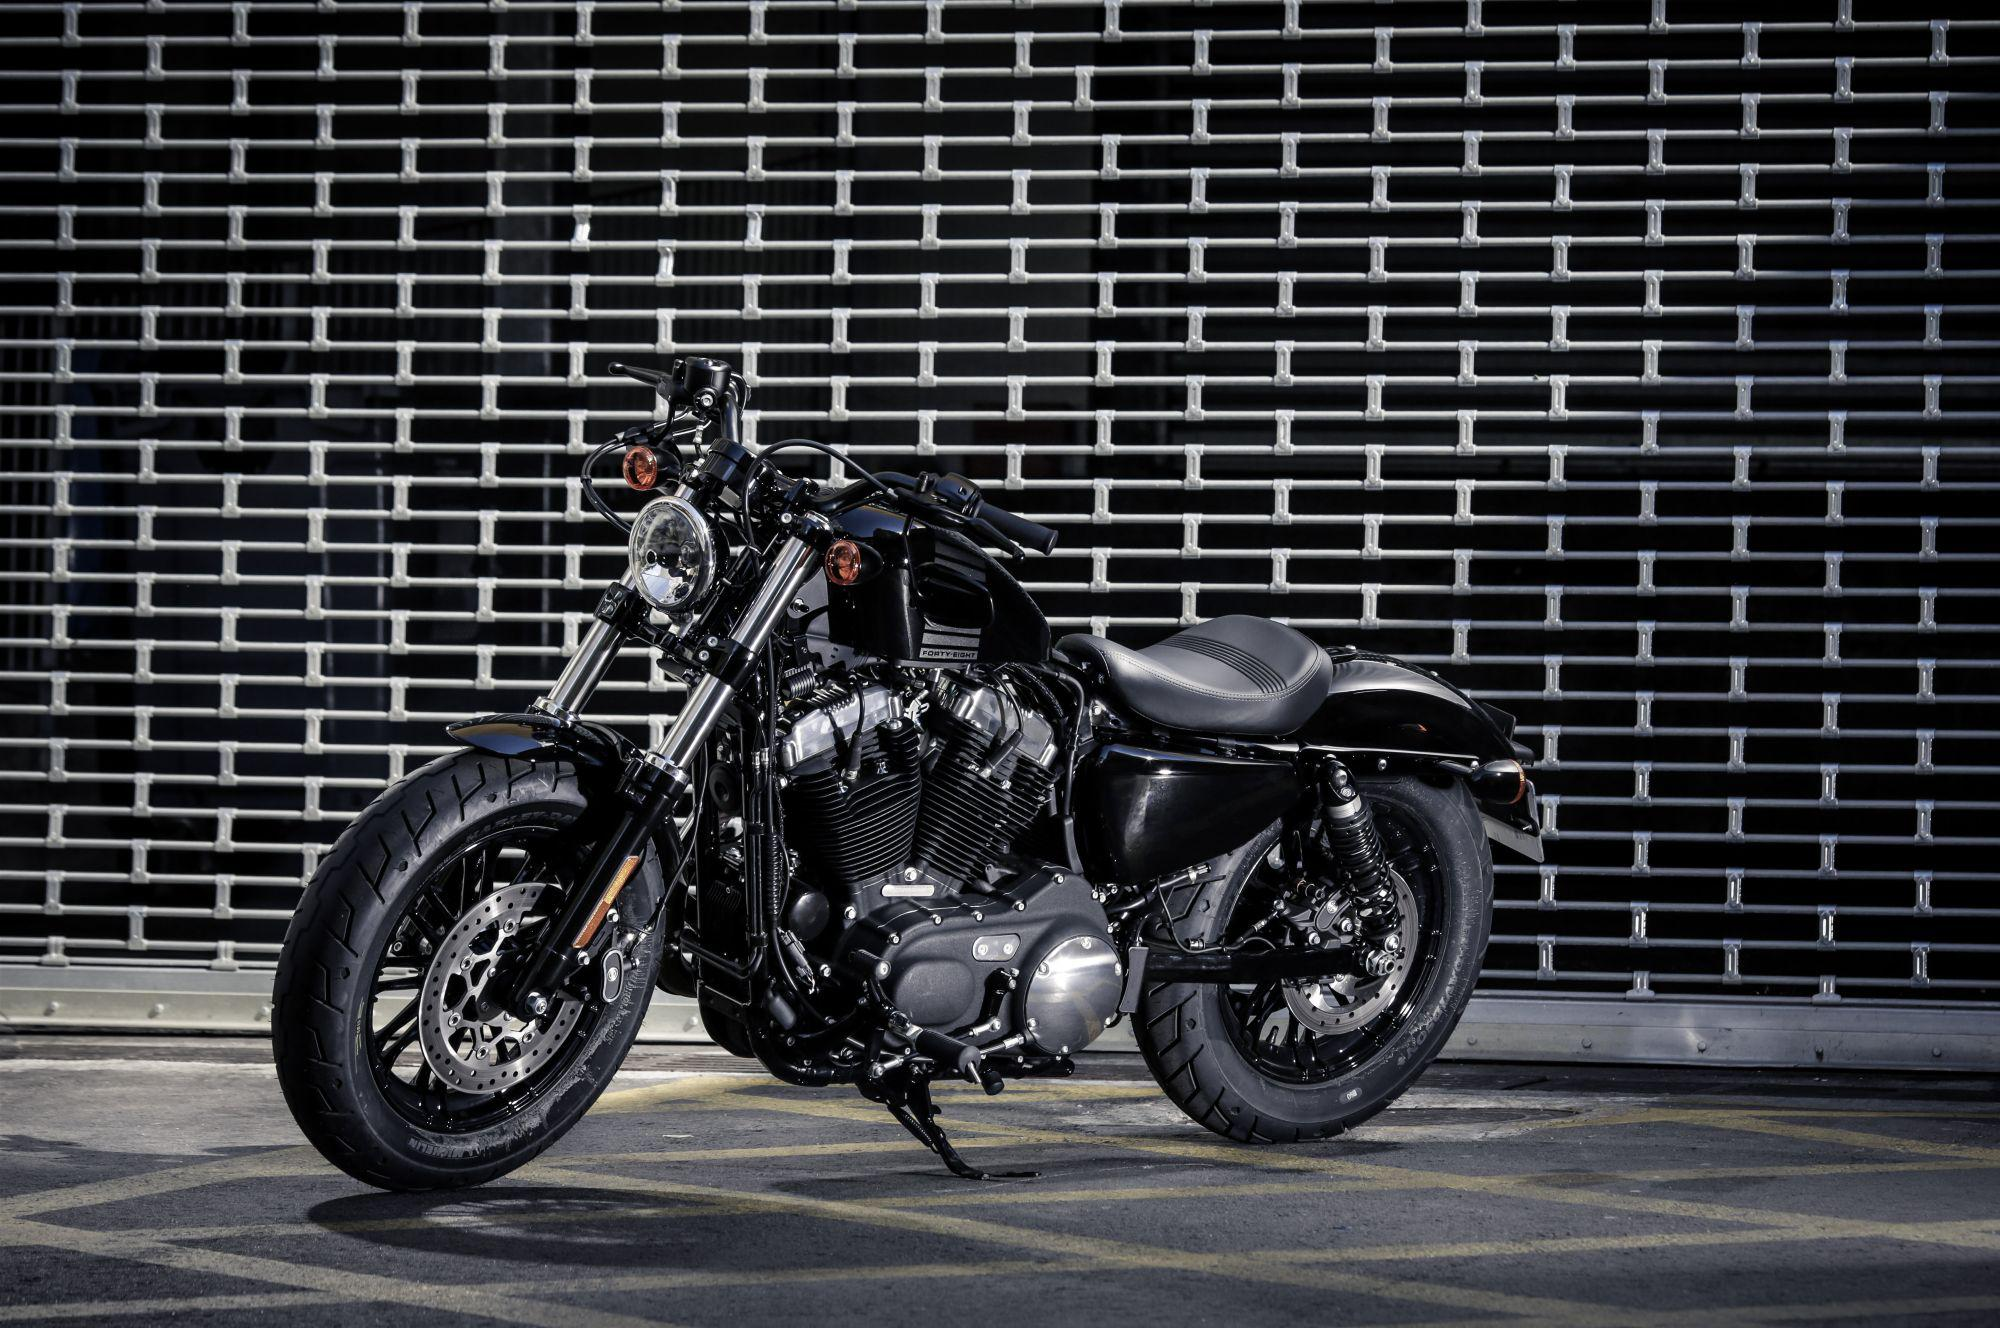 Harley Davidson Roadster Uk